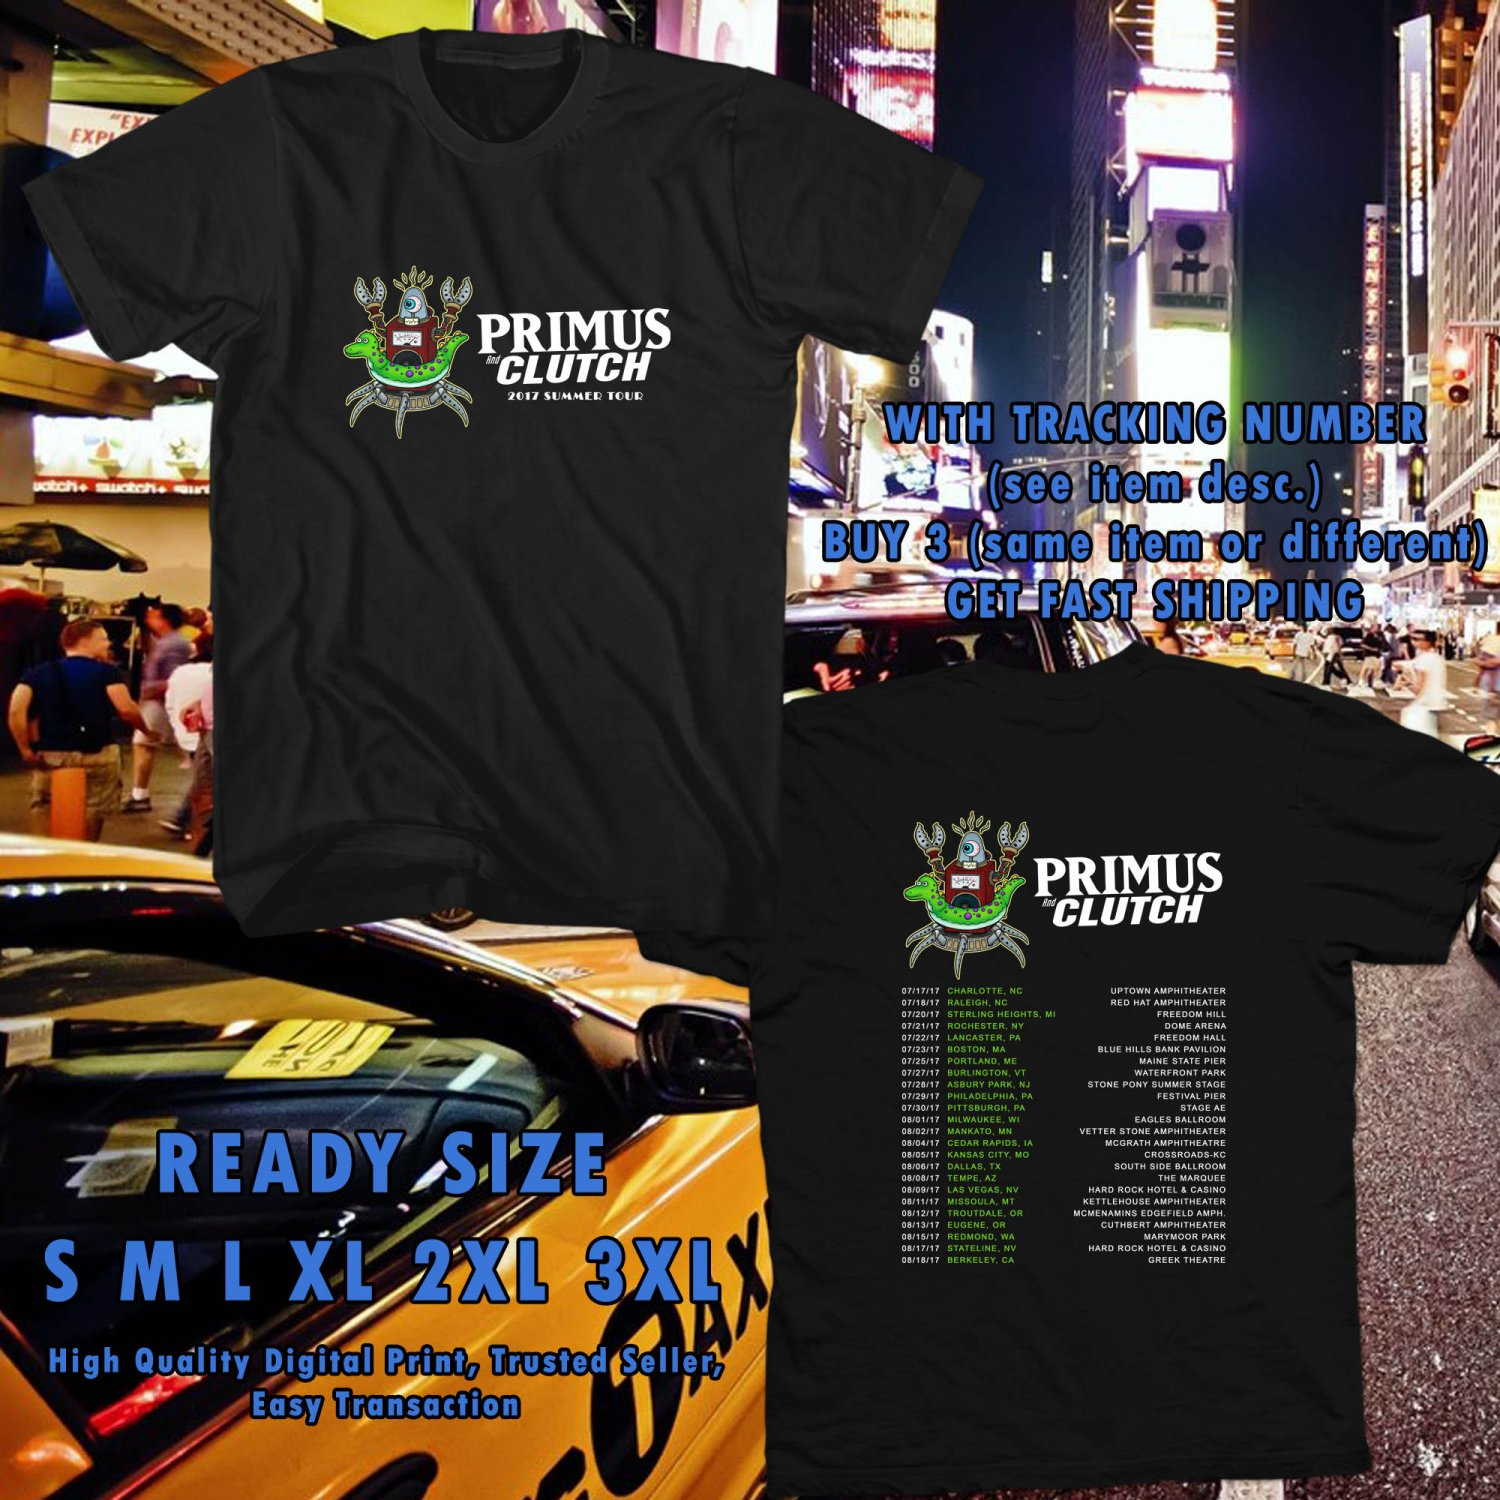 NEW AN EVENING WITH PRIMUS AND CLUTCH SUMMER TOUR 2017 black TEE W DATES DMTR 487